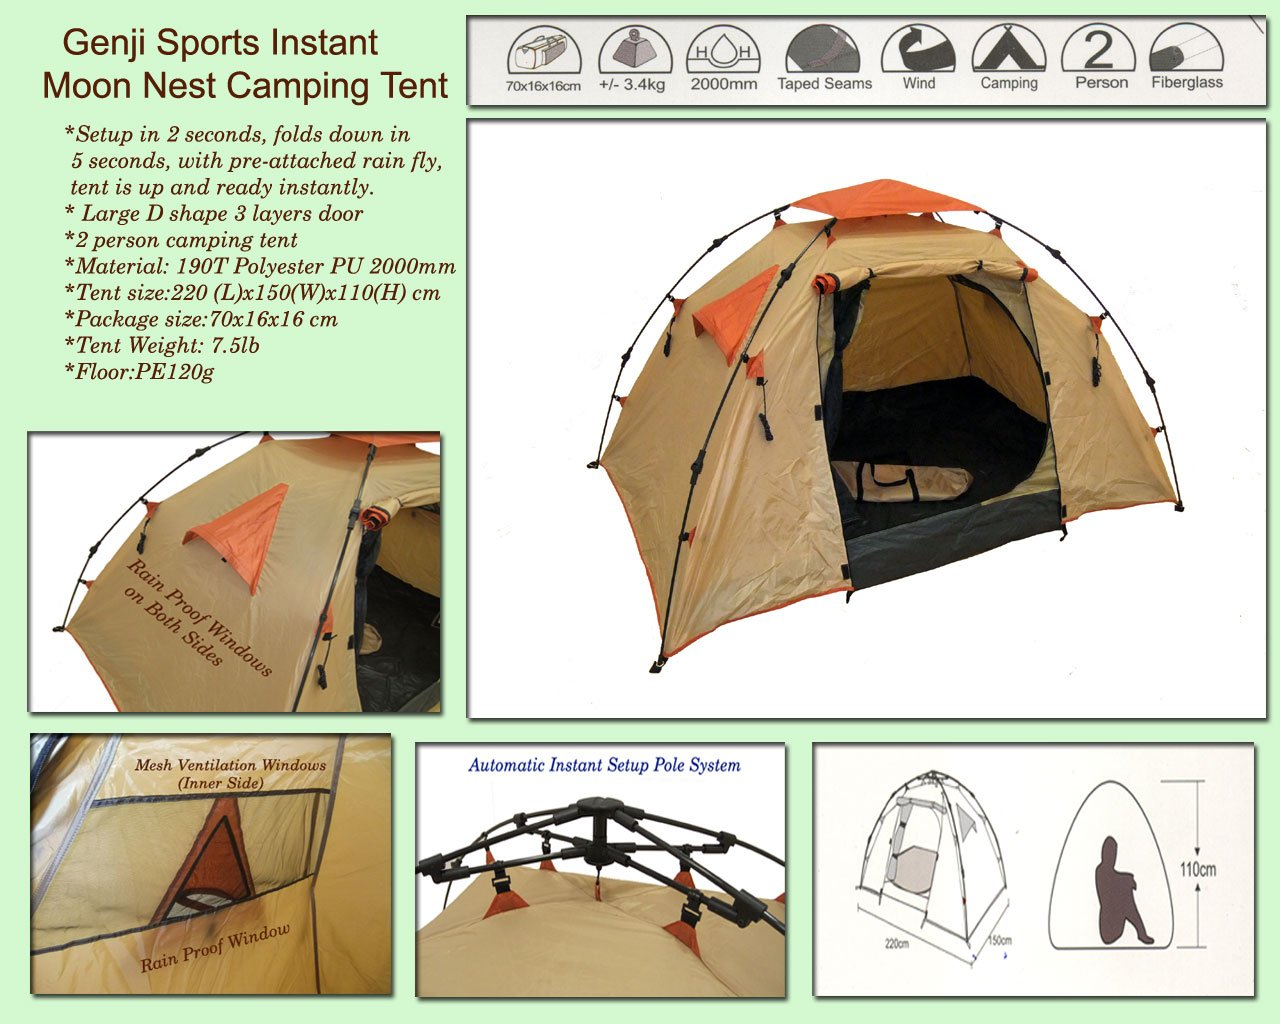 Amazon.com  Genji Sports Instant C&ing Tent  Backpacking Tents  Sports u0026 Outdoors  sc 1 st  Amazon.com & Amazon.com : Genji Sports Instant Camping Tent : Backpacking Tents ...